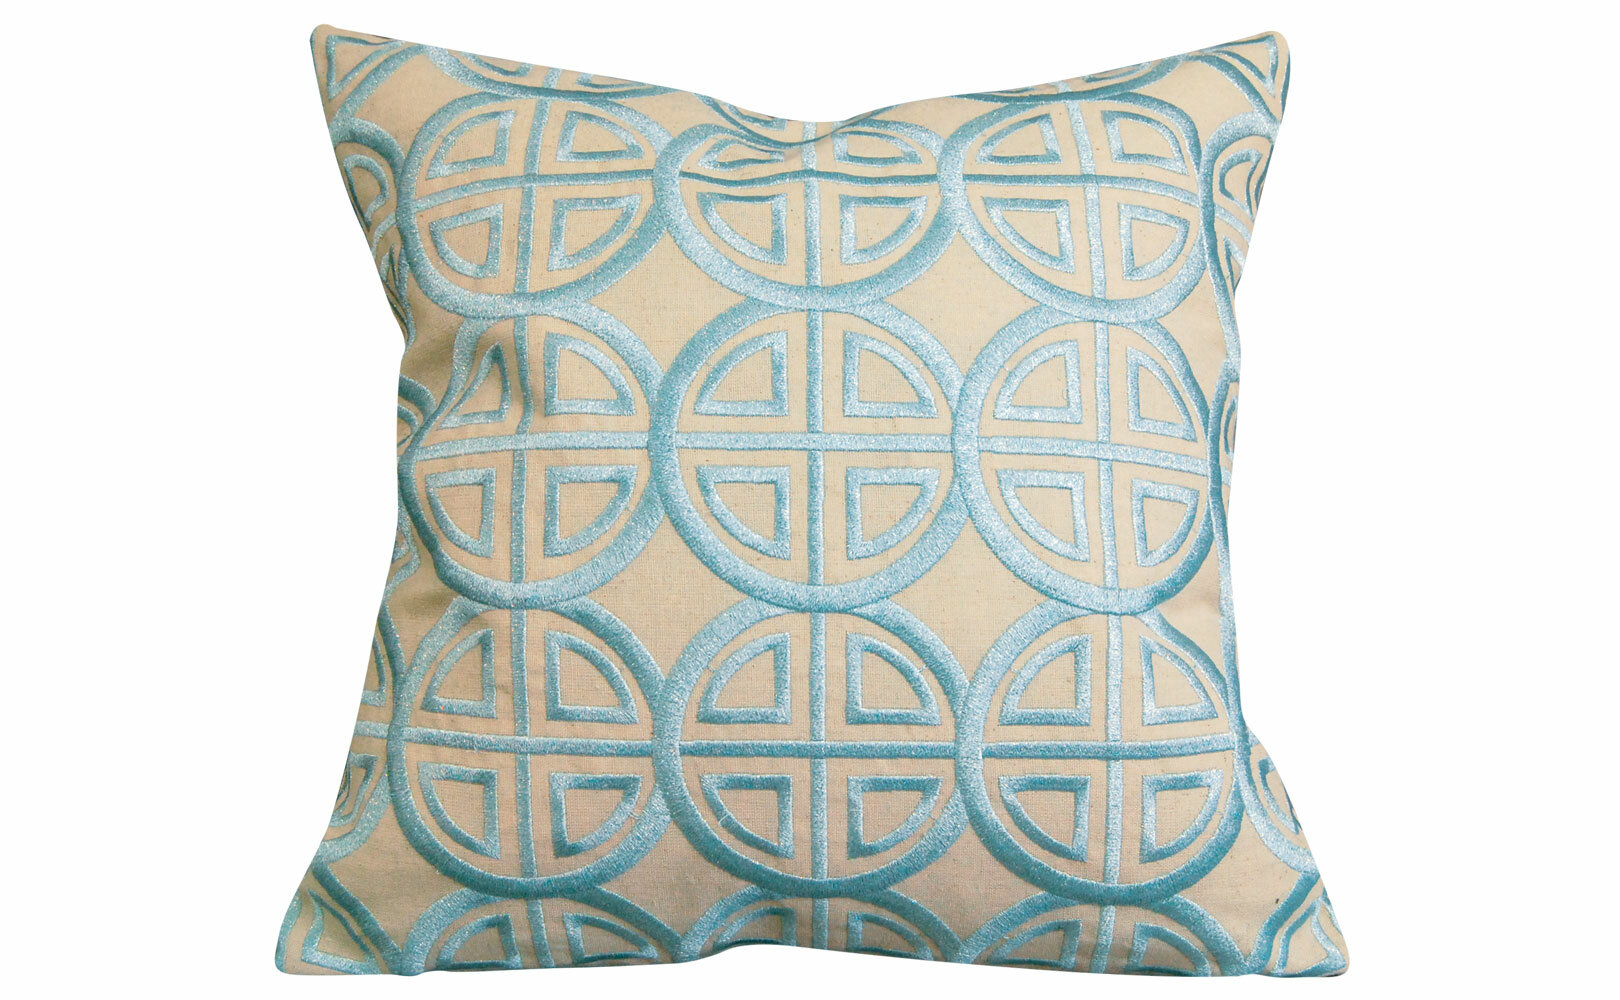 Modern Embroidered Throw Pillow : Rightside Design Modern Embroidered Medallion Throw Pillow eBay